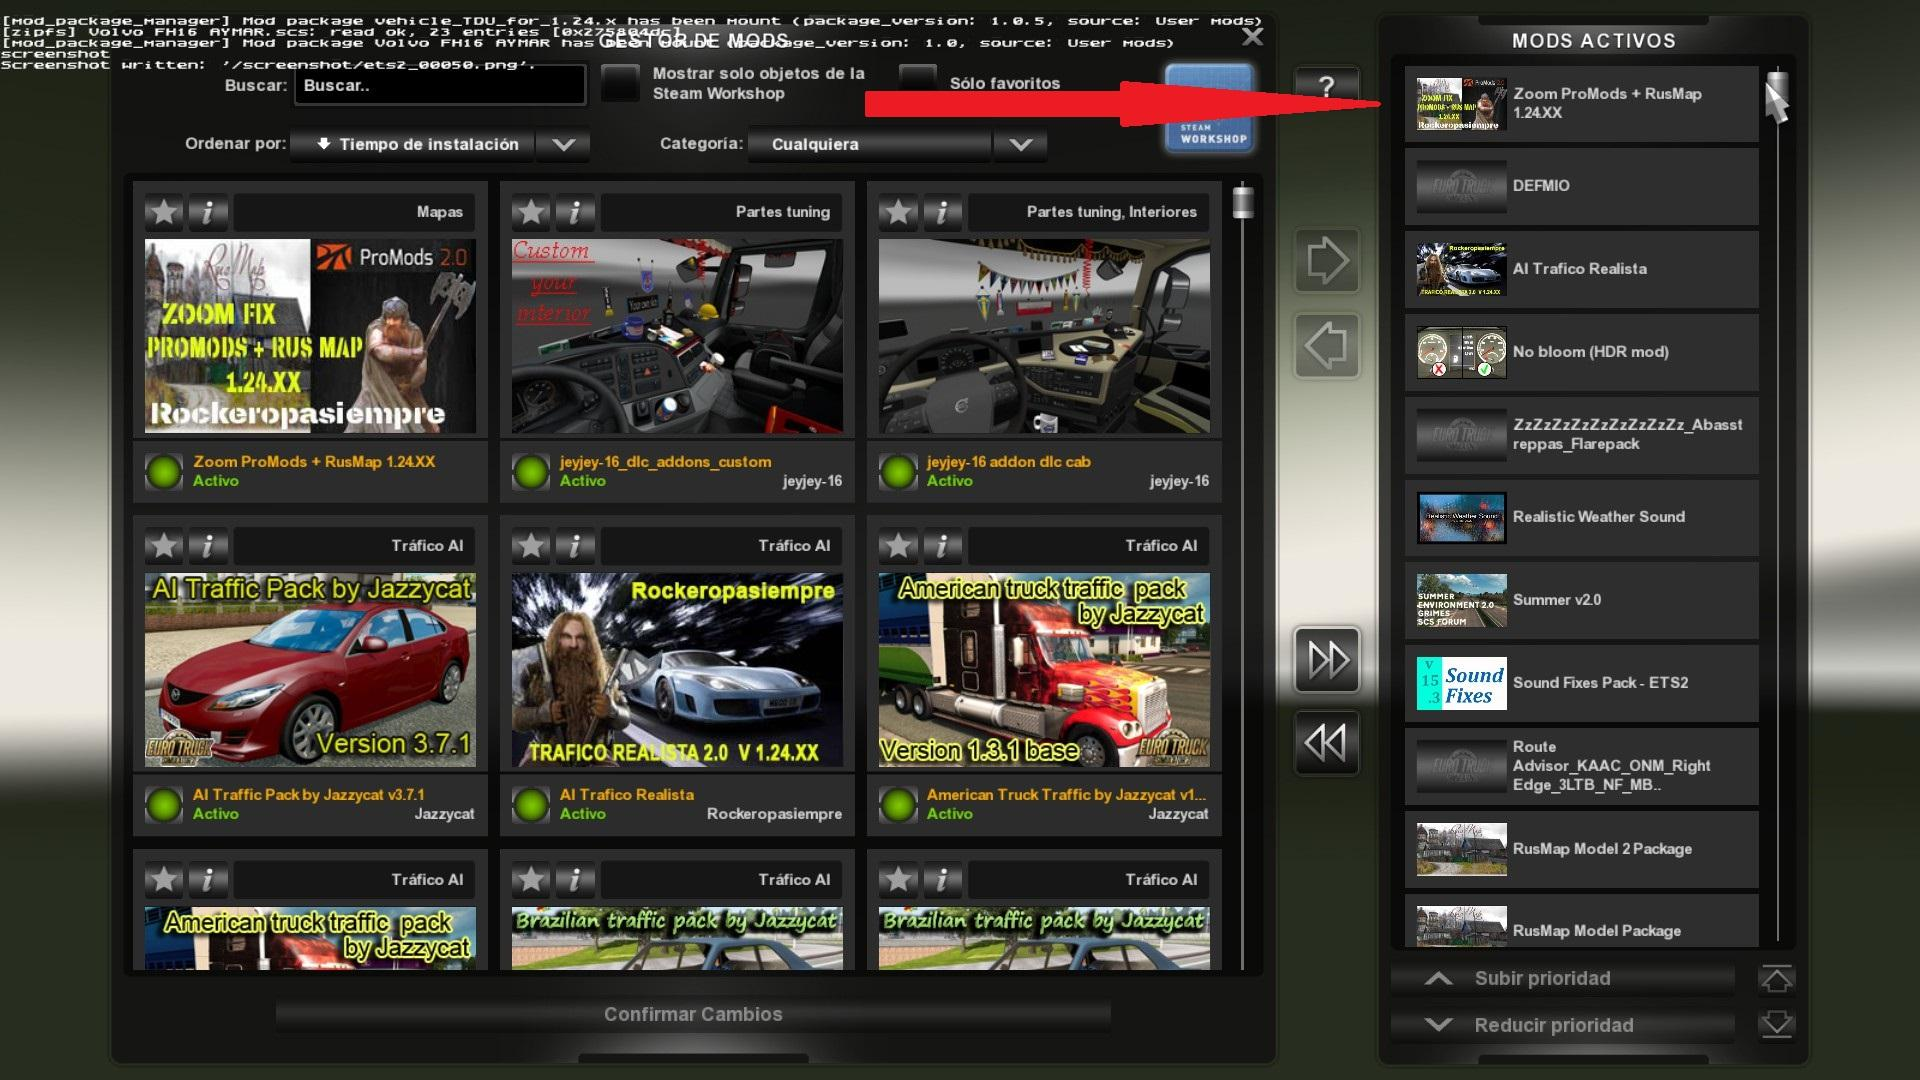 PROMODS + RUSMAP ZOOM BY ROCKEROPASIEMPRE | ETS2 mods | Euro